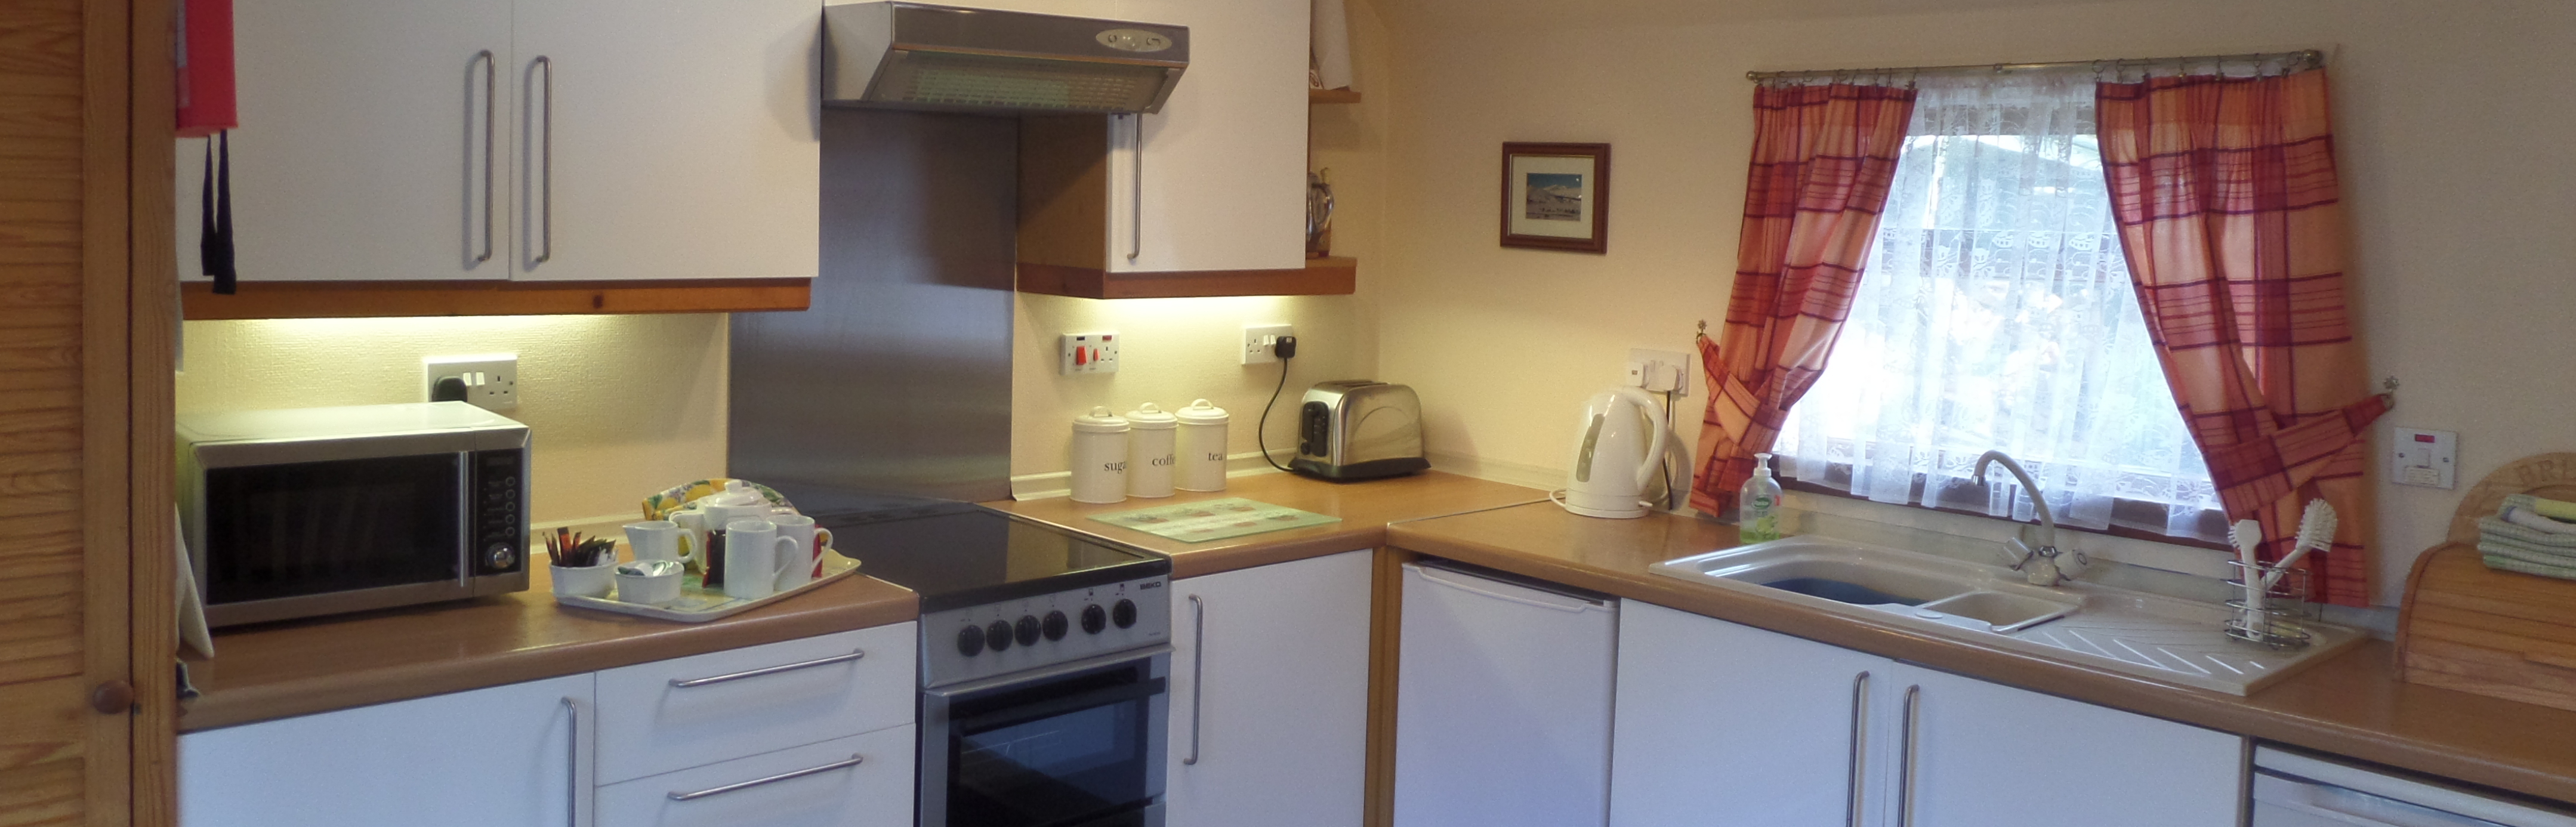 Holiday Cottages Braemar Cranford Guest House Scotland